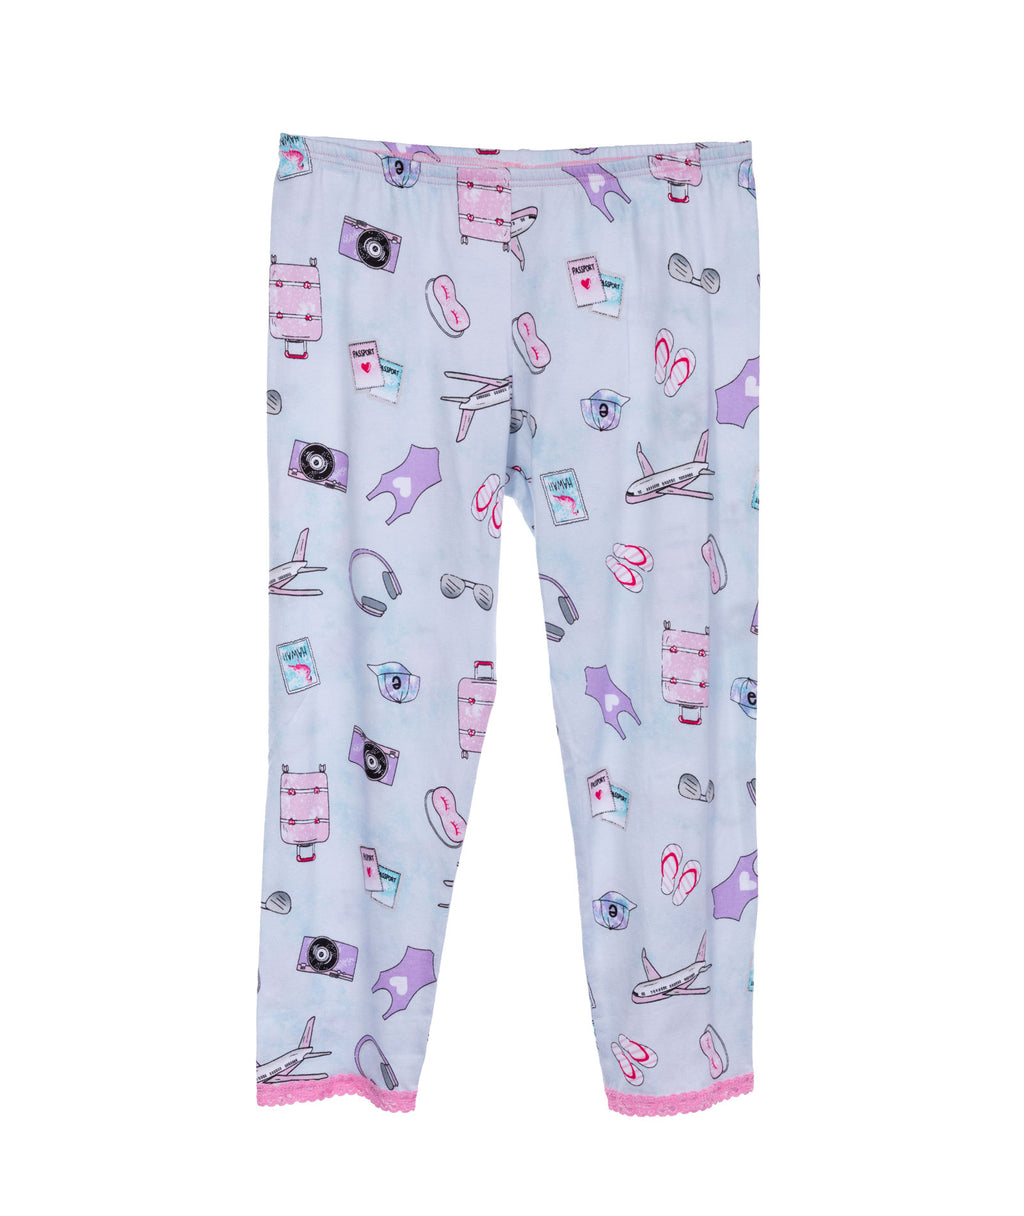 Esme Girls Travel Pajama Set